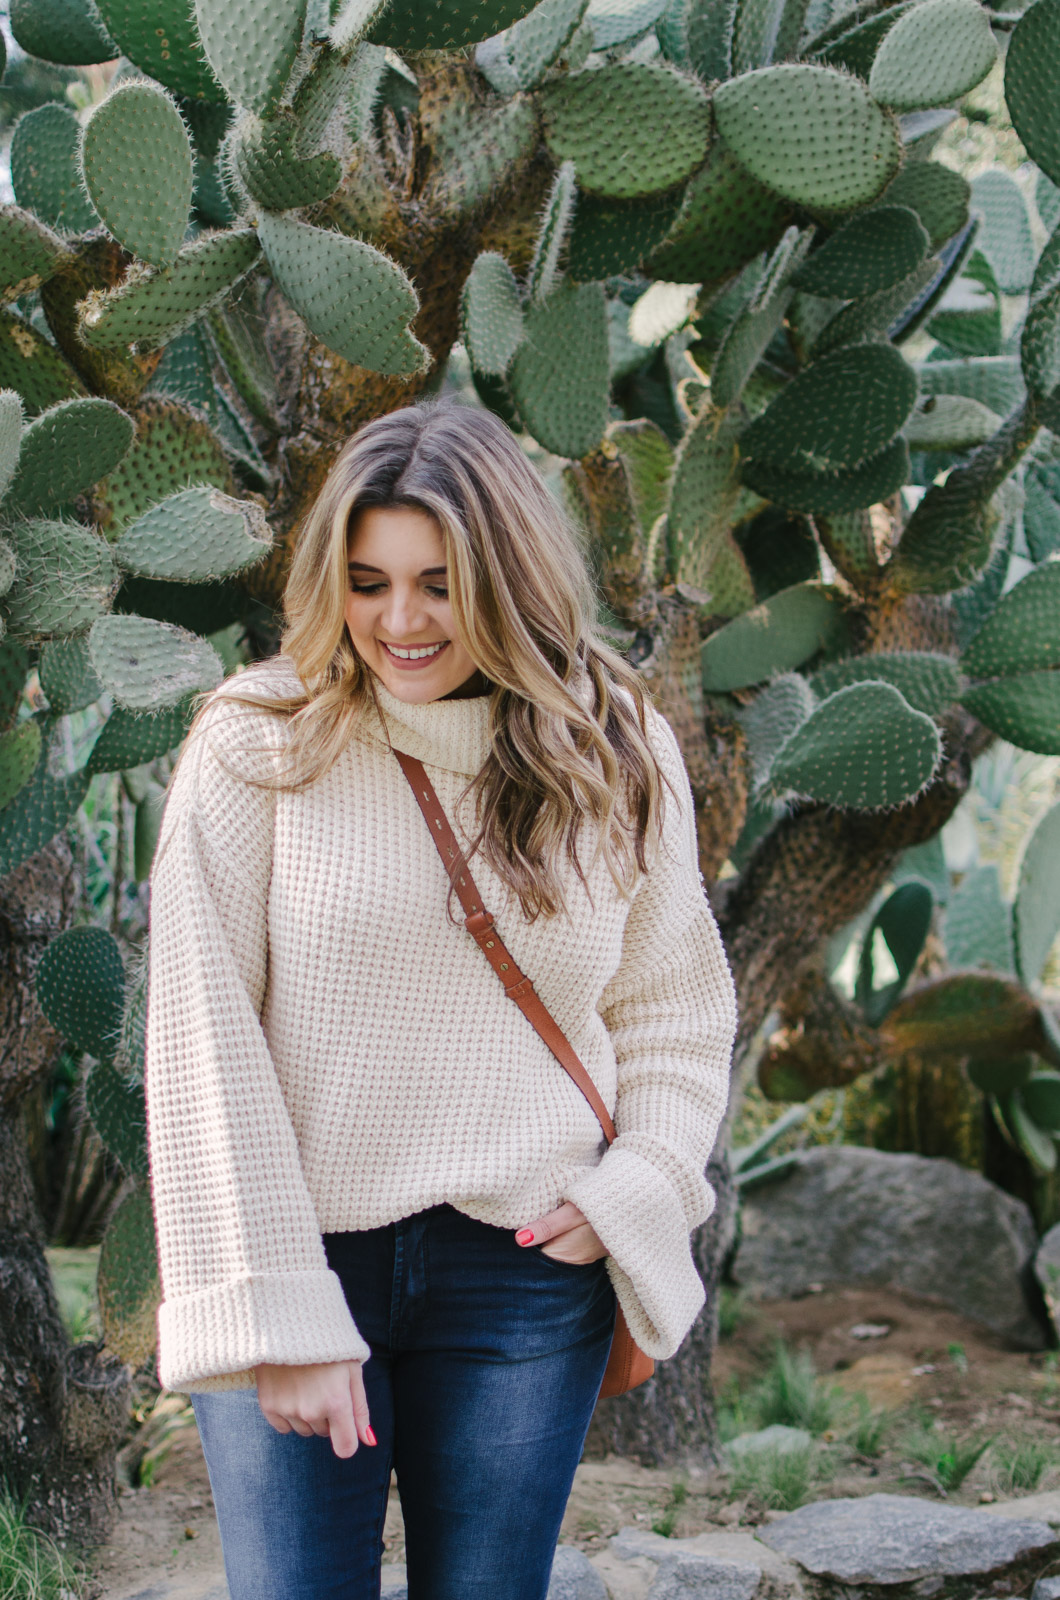 chunky sweater outfit - how wear chunky sweater | shop this look or see more cute winter outfits at bylaurenm.com!